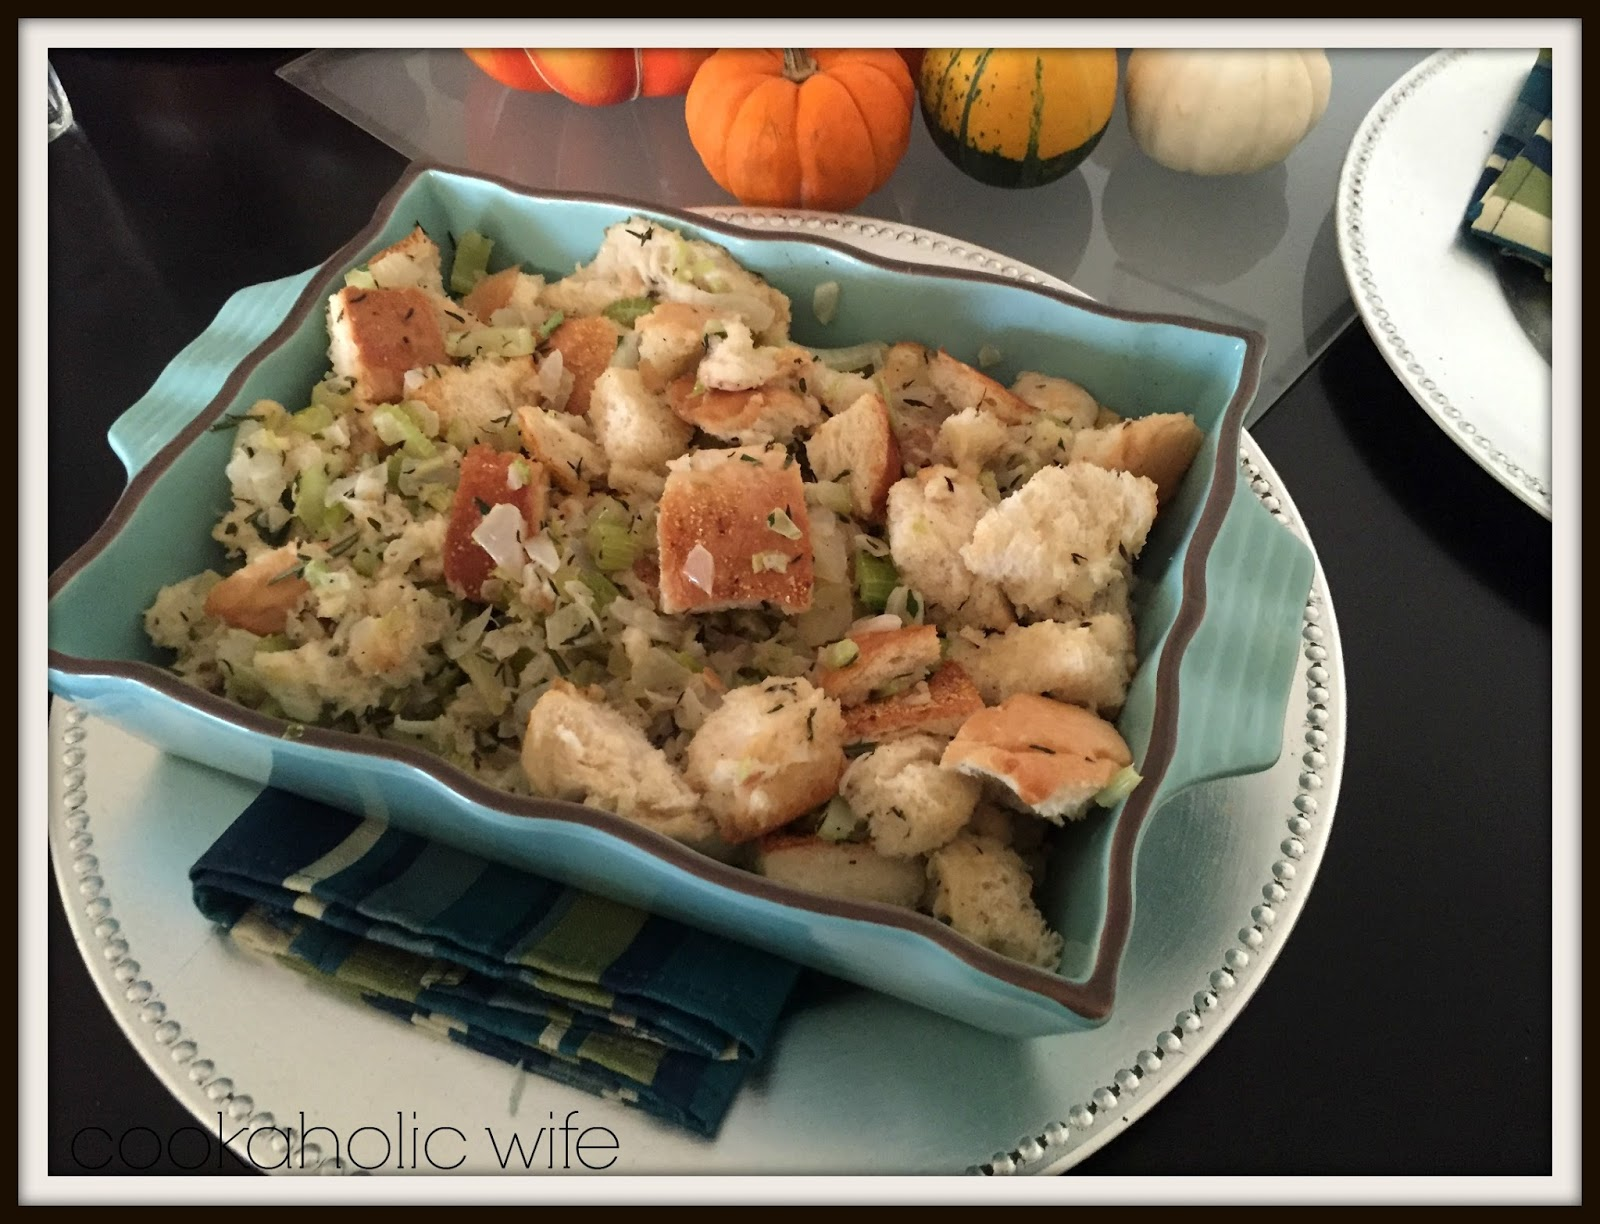 Cookaholic Wife: Herbed Bread Stuffing